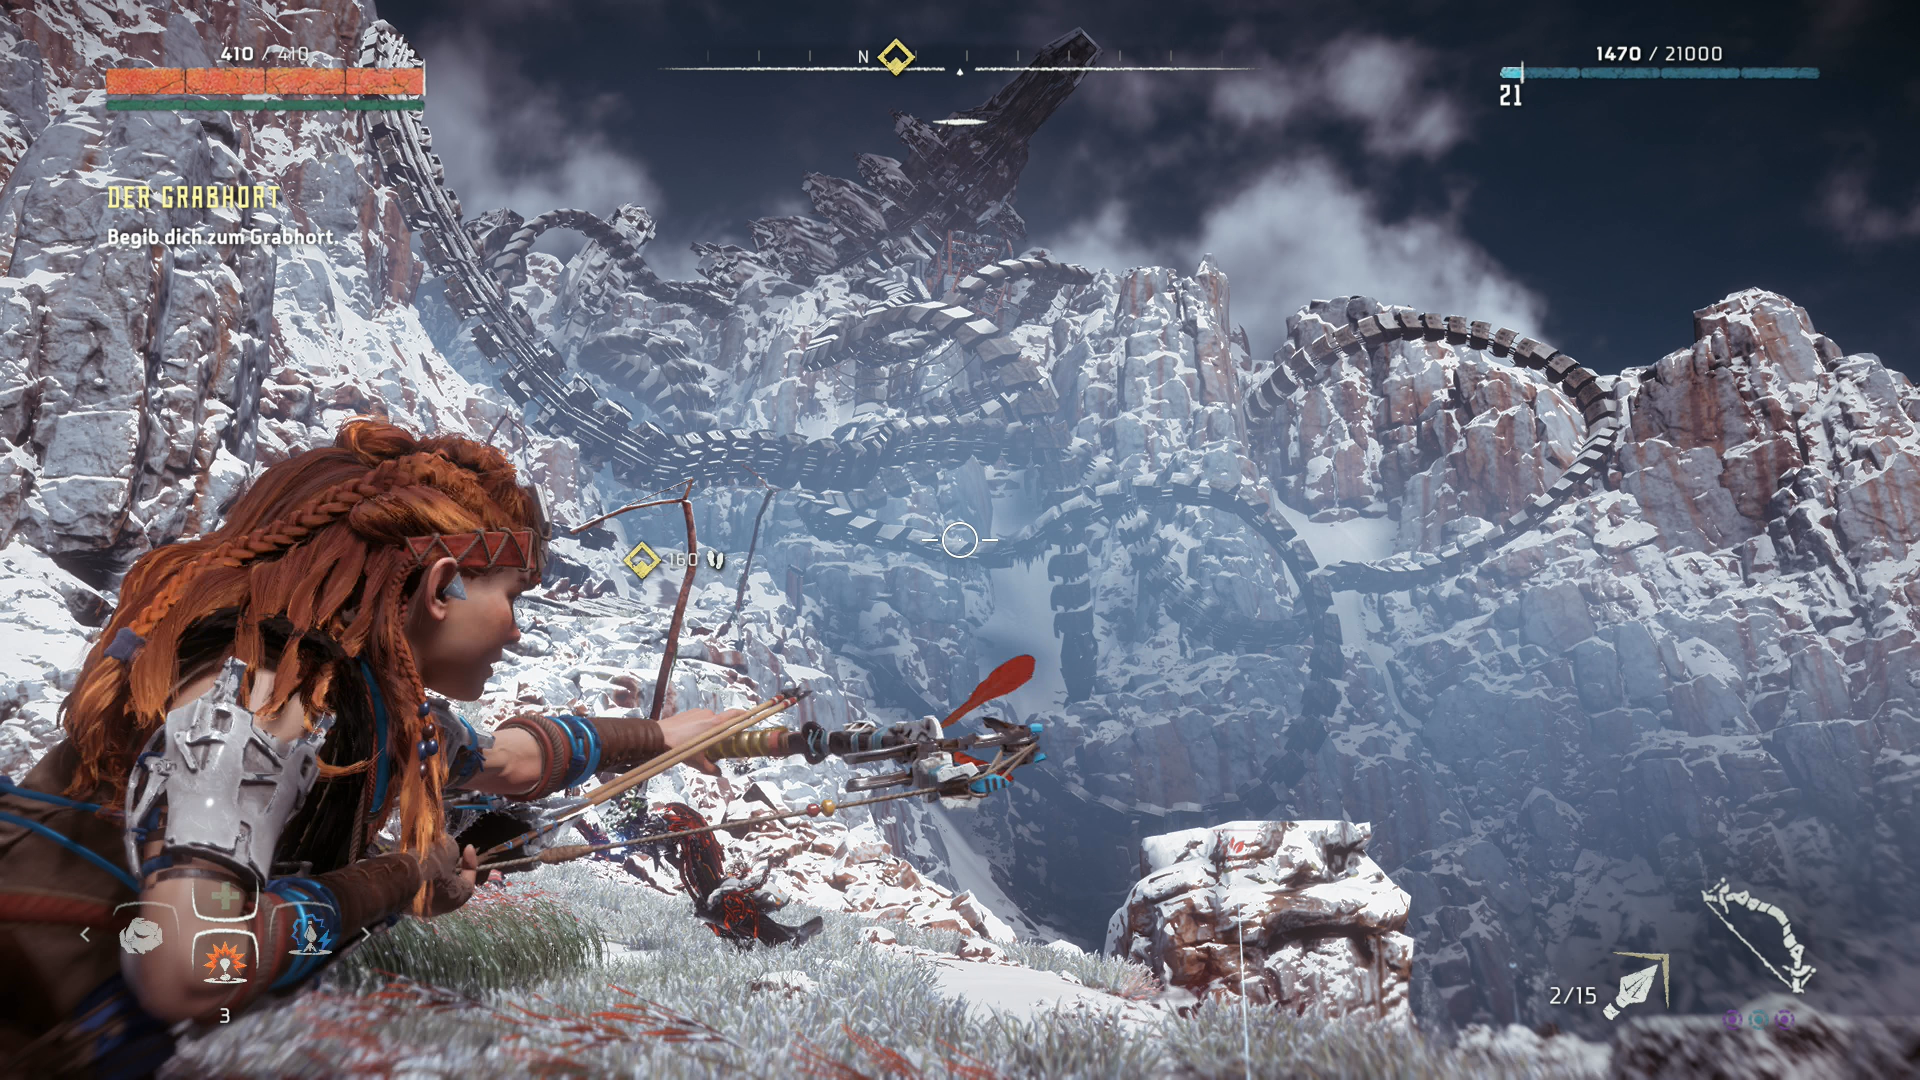 Horizon Zero Dawn Karte Ruinen.Horizon Zero Dawn Walkthrough Und Tipps Der Grabhort Kampf Gegen